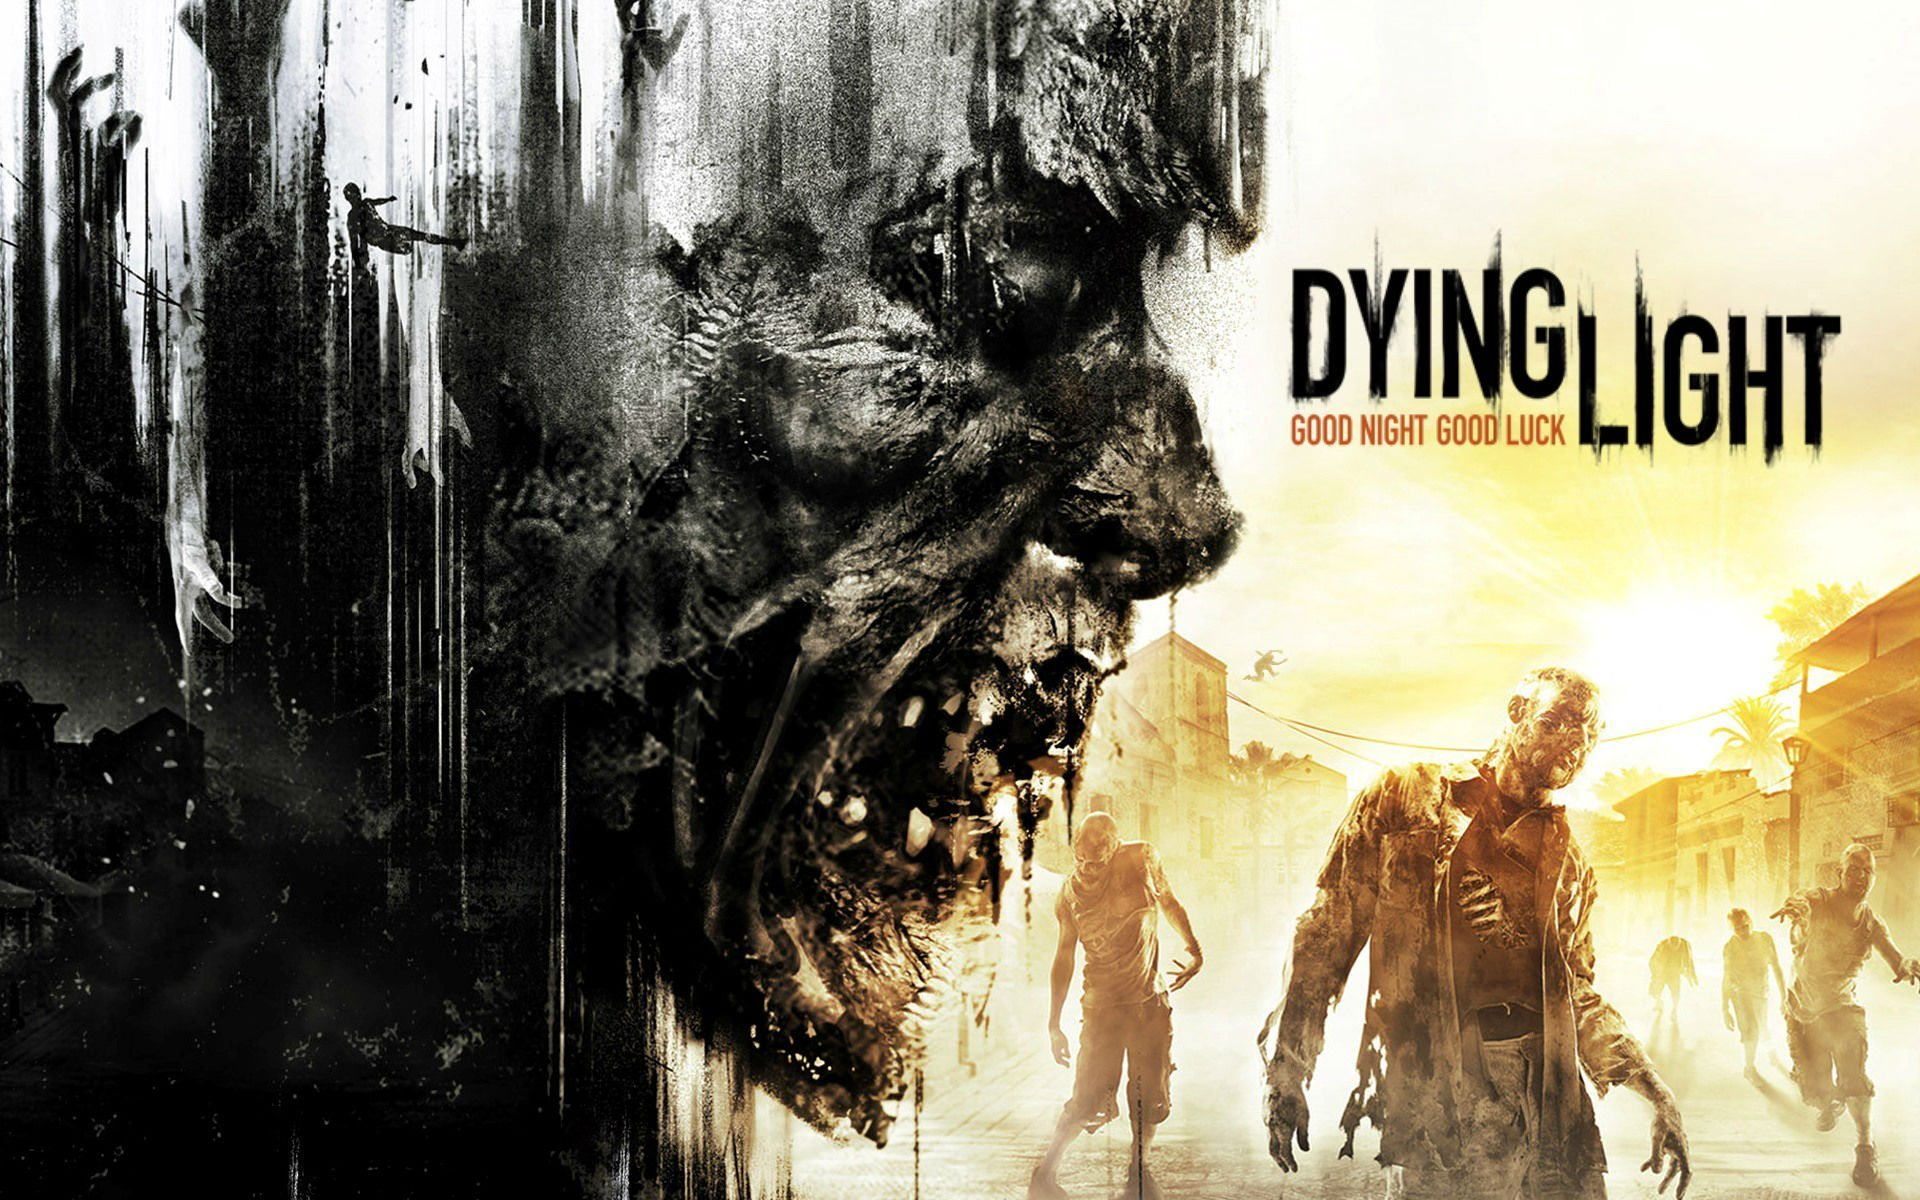 Dying-Light-2015-Game-HD_Image